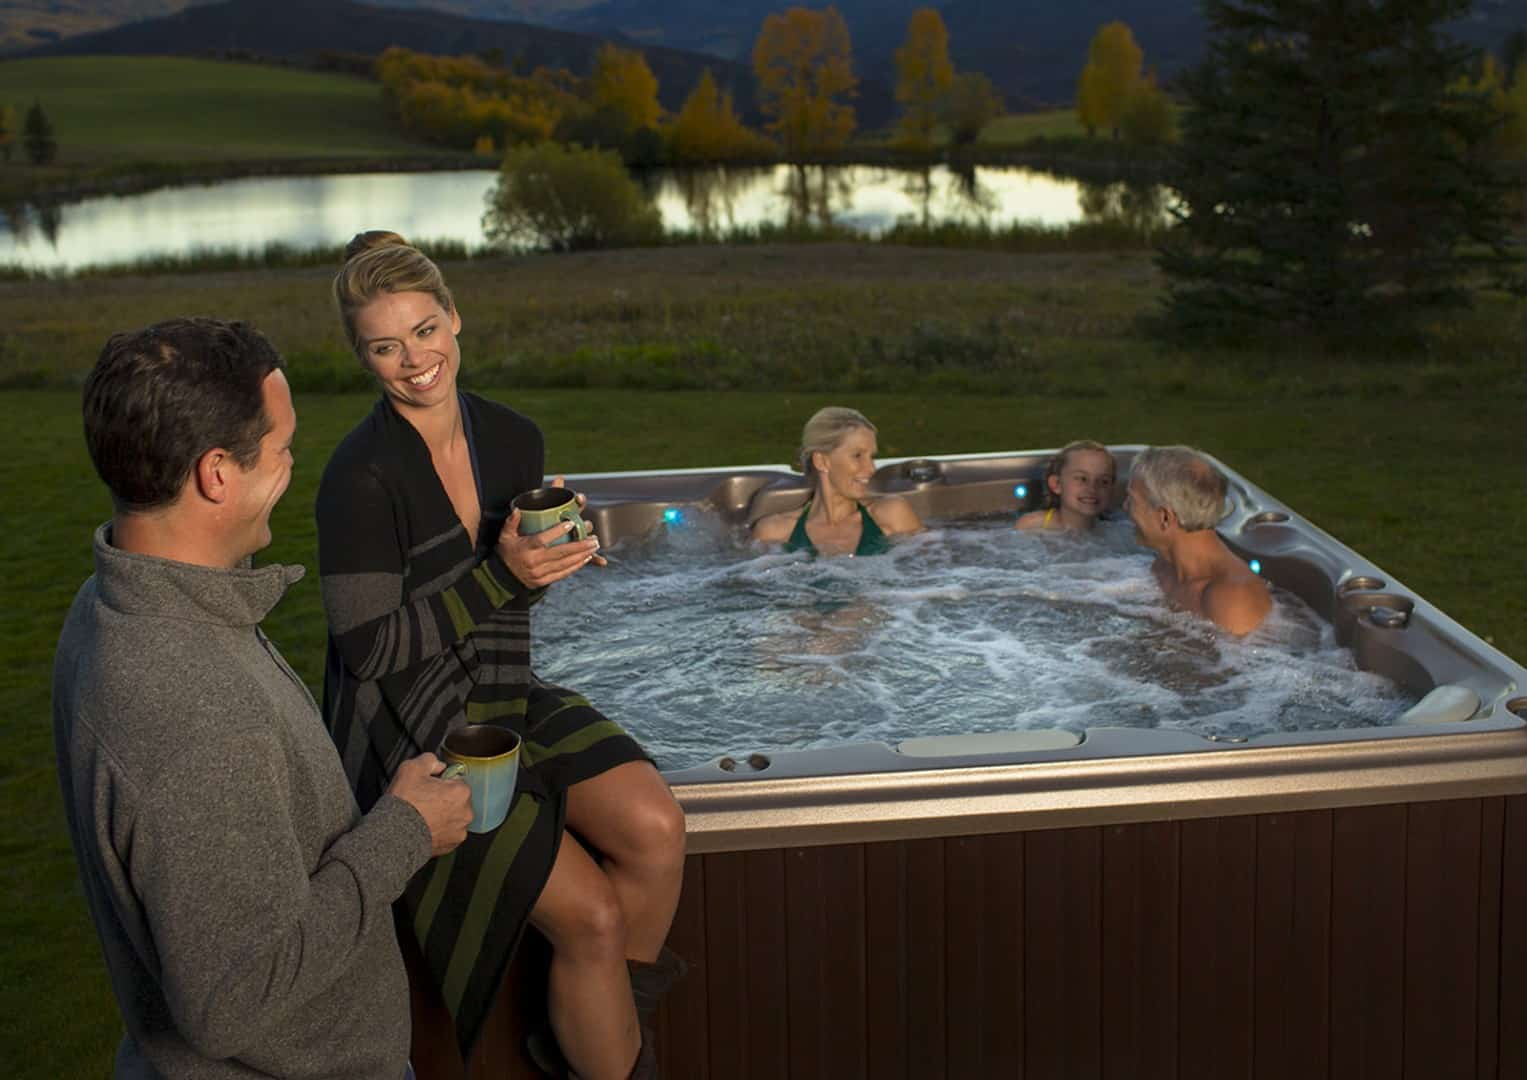 hot-tub-topless-pictures